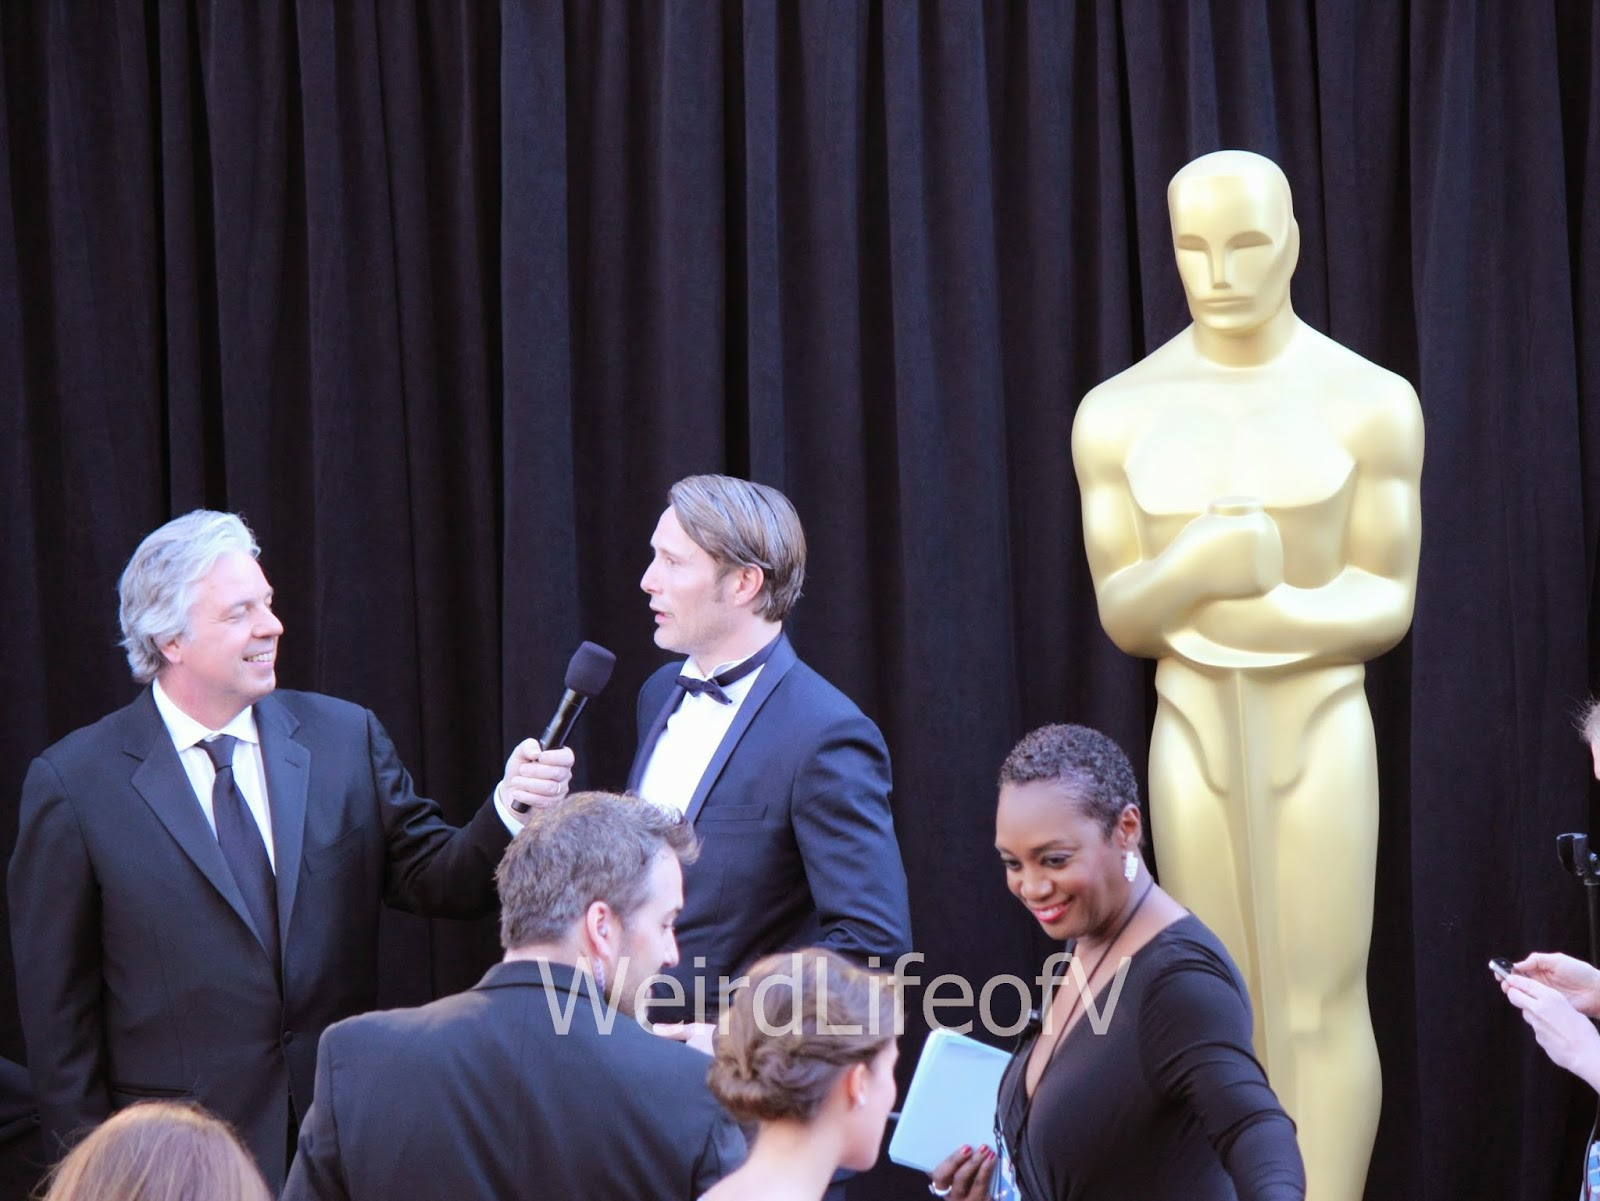 Mads Mikkelsen being interviewed by Chris Connelly at the 2013 Academy Awards